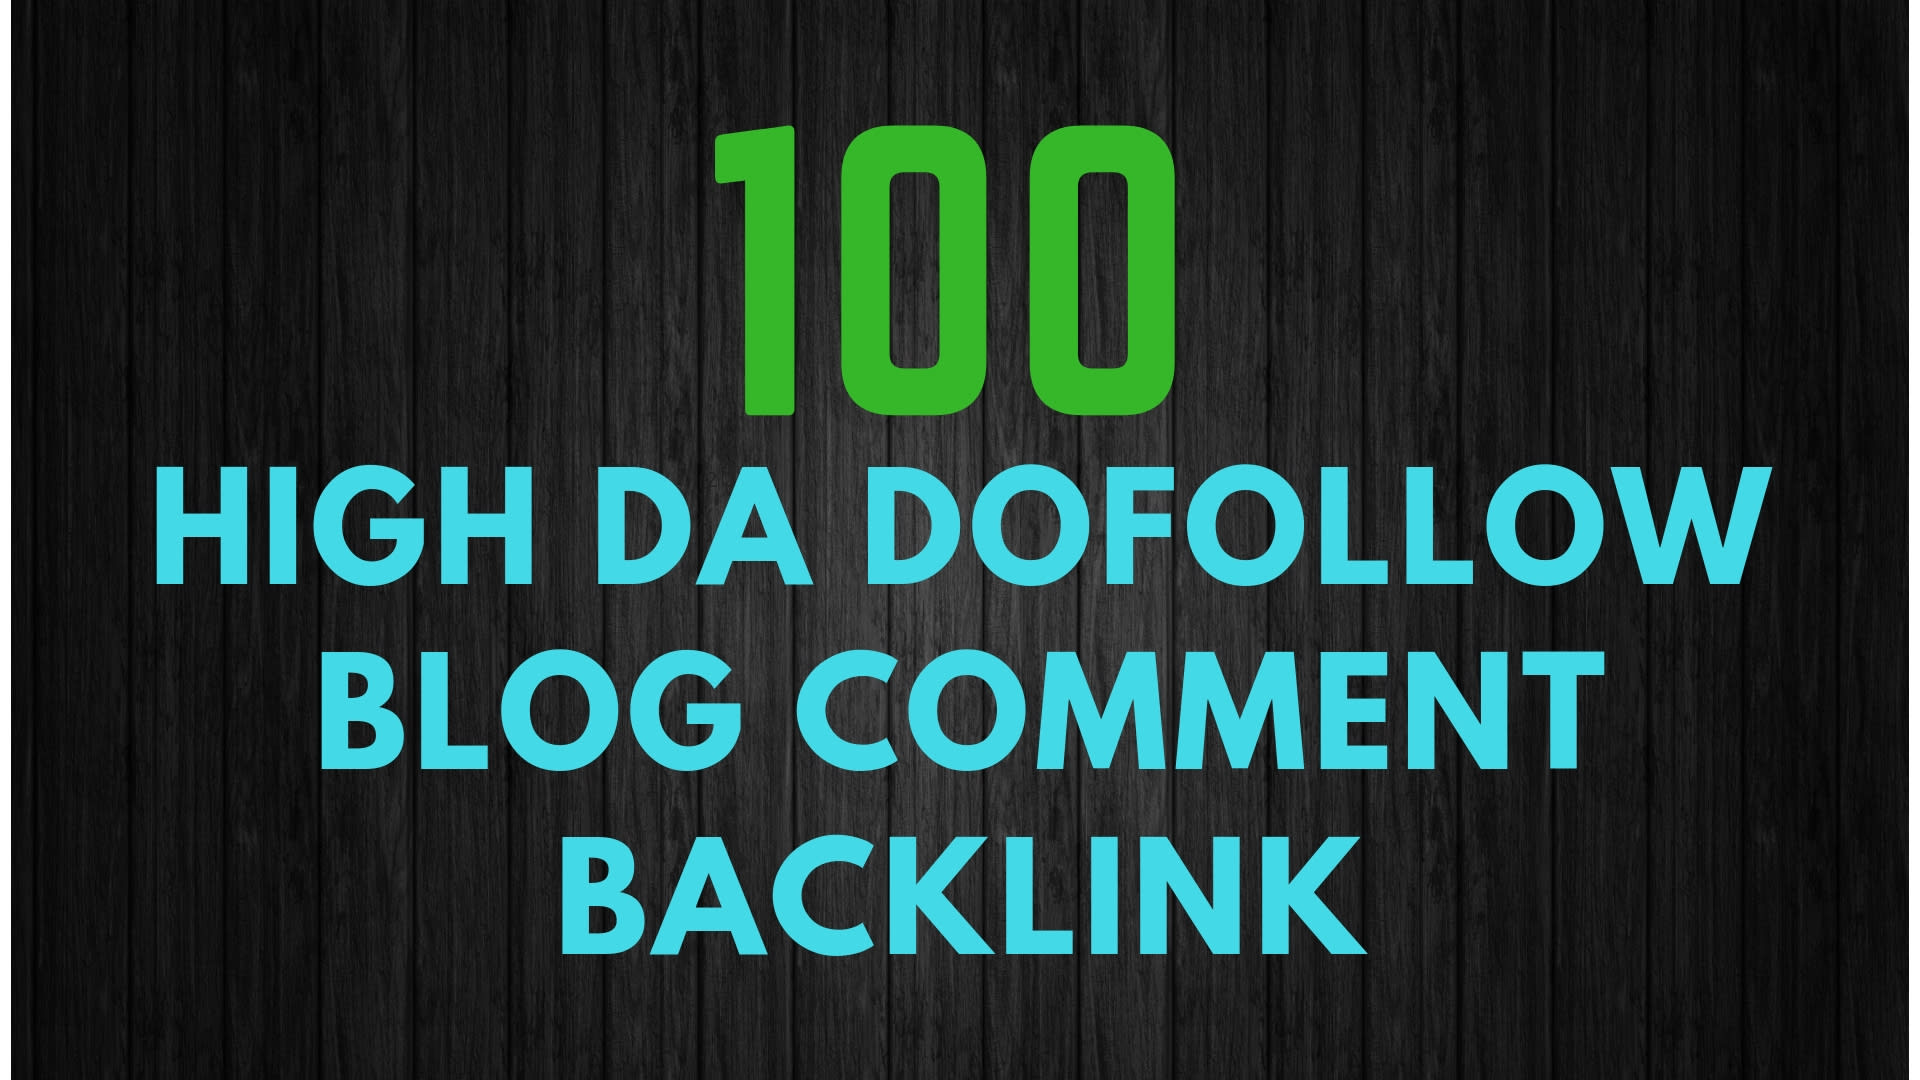 I Will do 100 High DA Dofollow Blog Comment Backlink Manual Work.